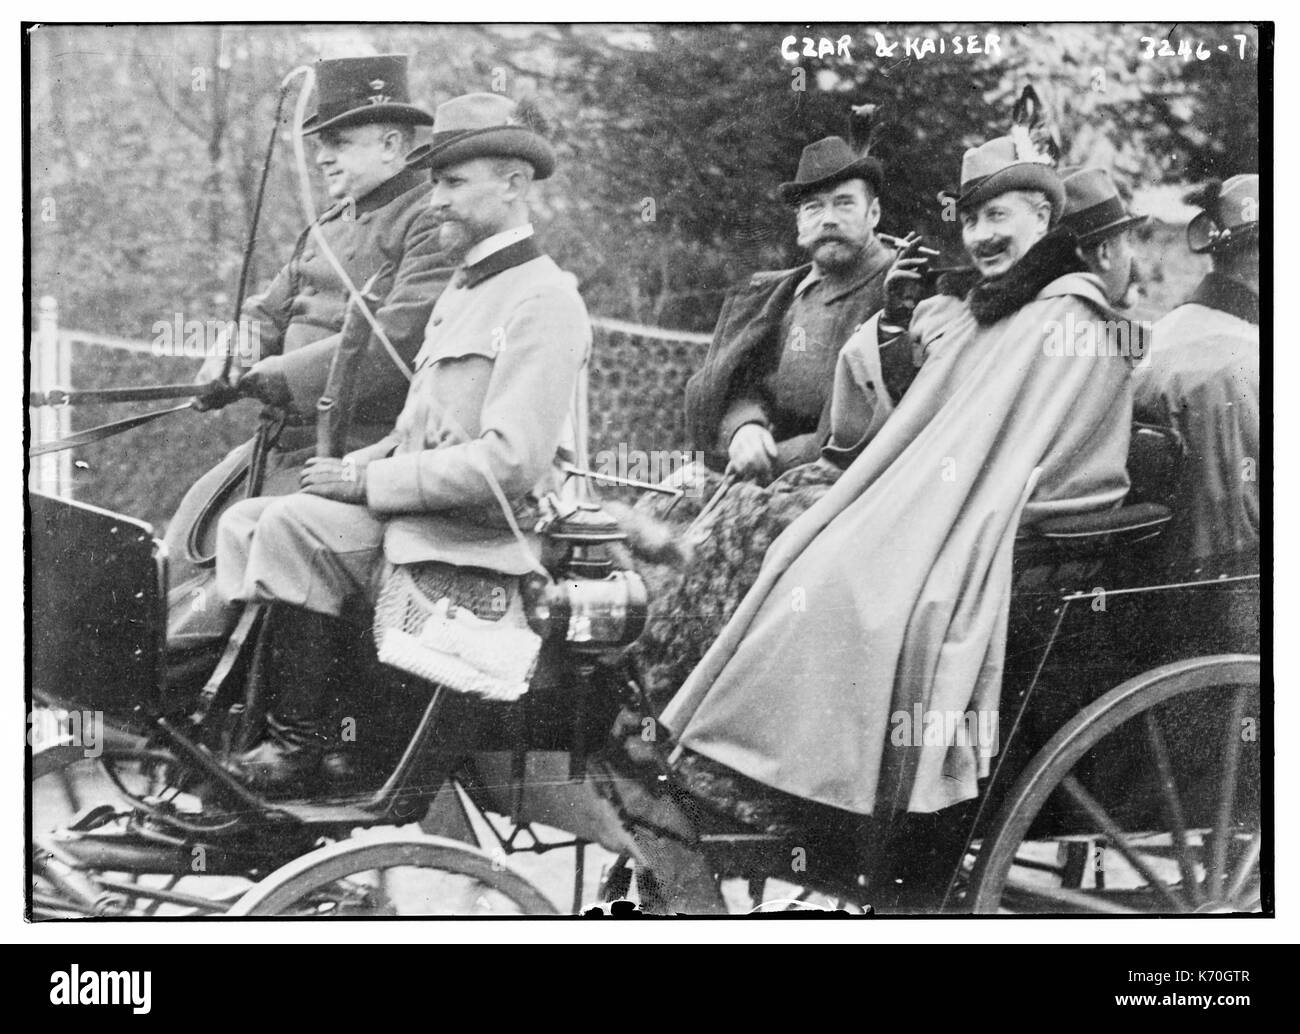 Royal cousins Czar Nicholas of Russia (middle seat, left) and Kaiser Wilhelm II of Prussia (holding cigarette) enjoy a carriage ride together. Possibly 1913. - Stock Image